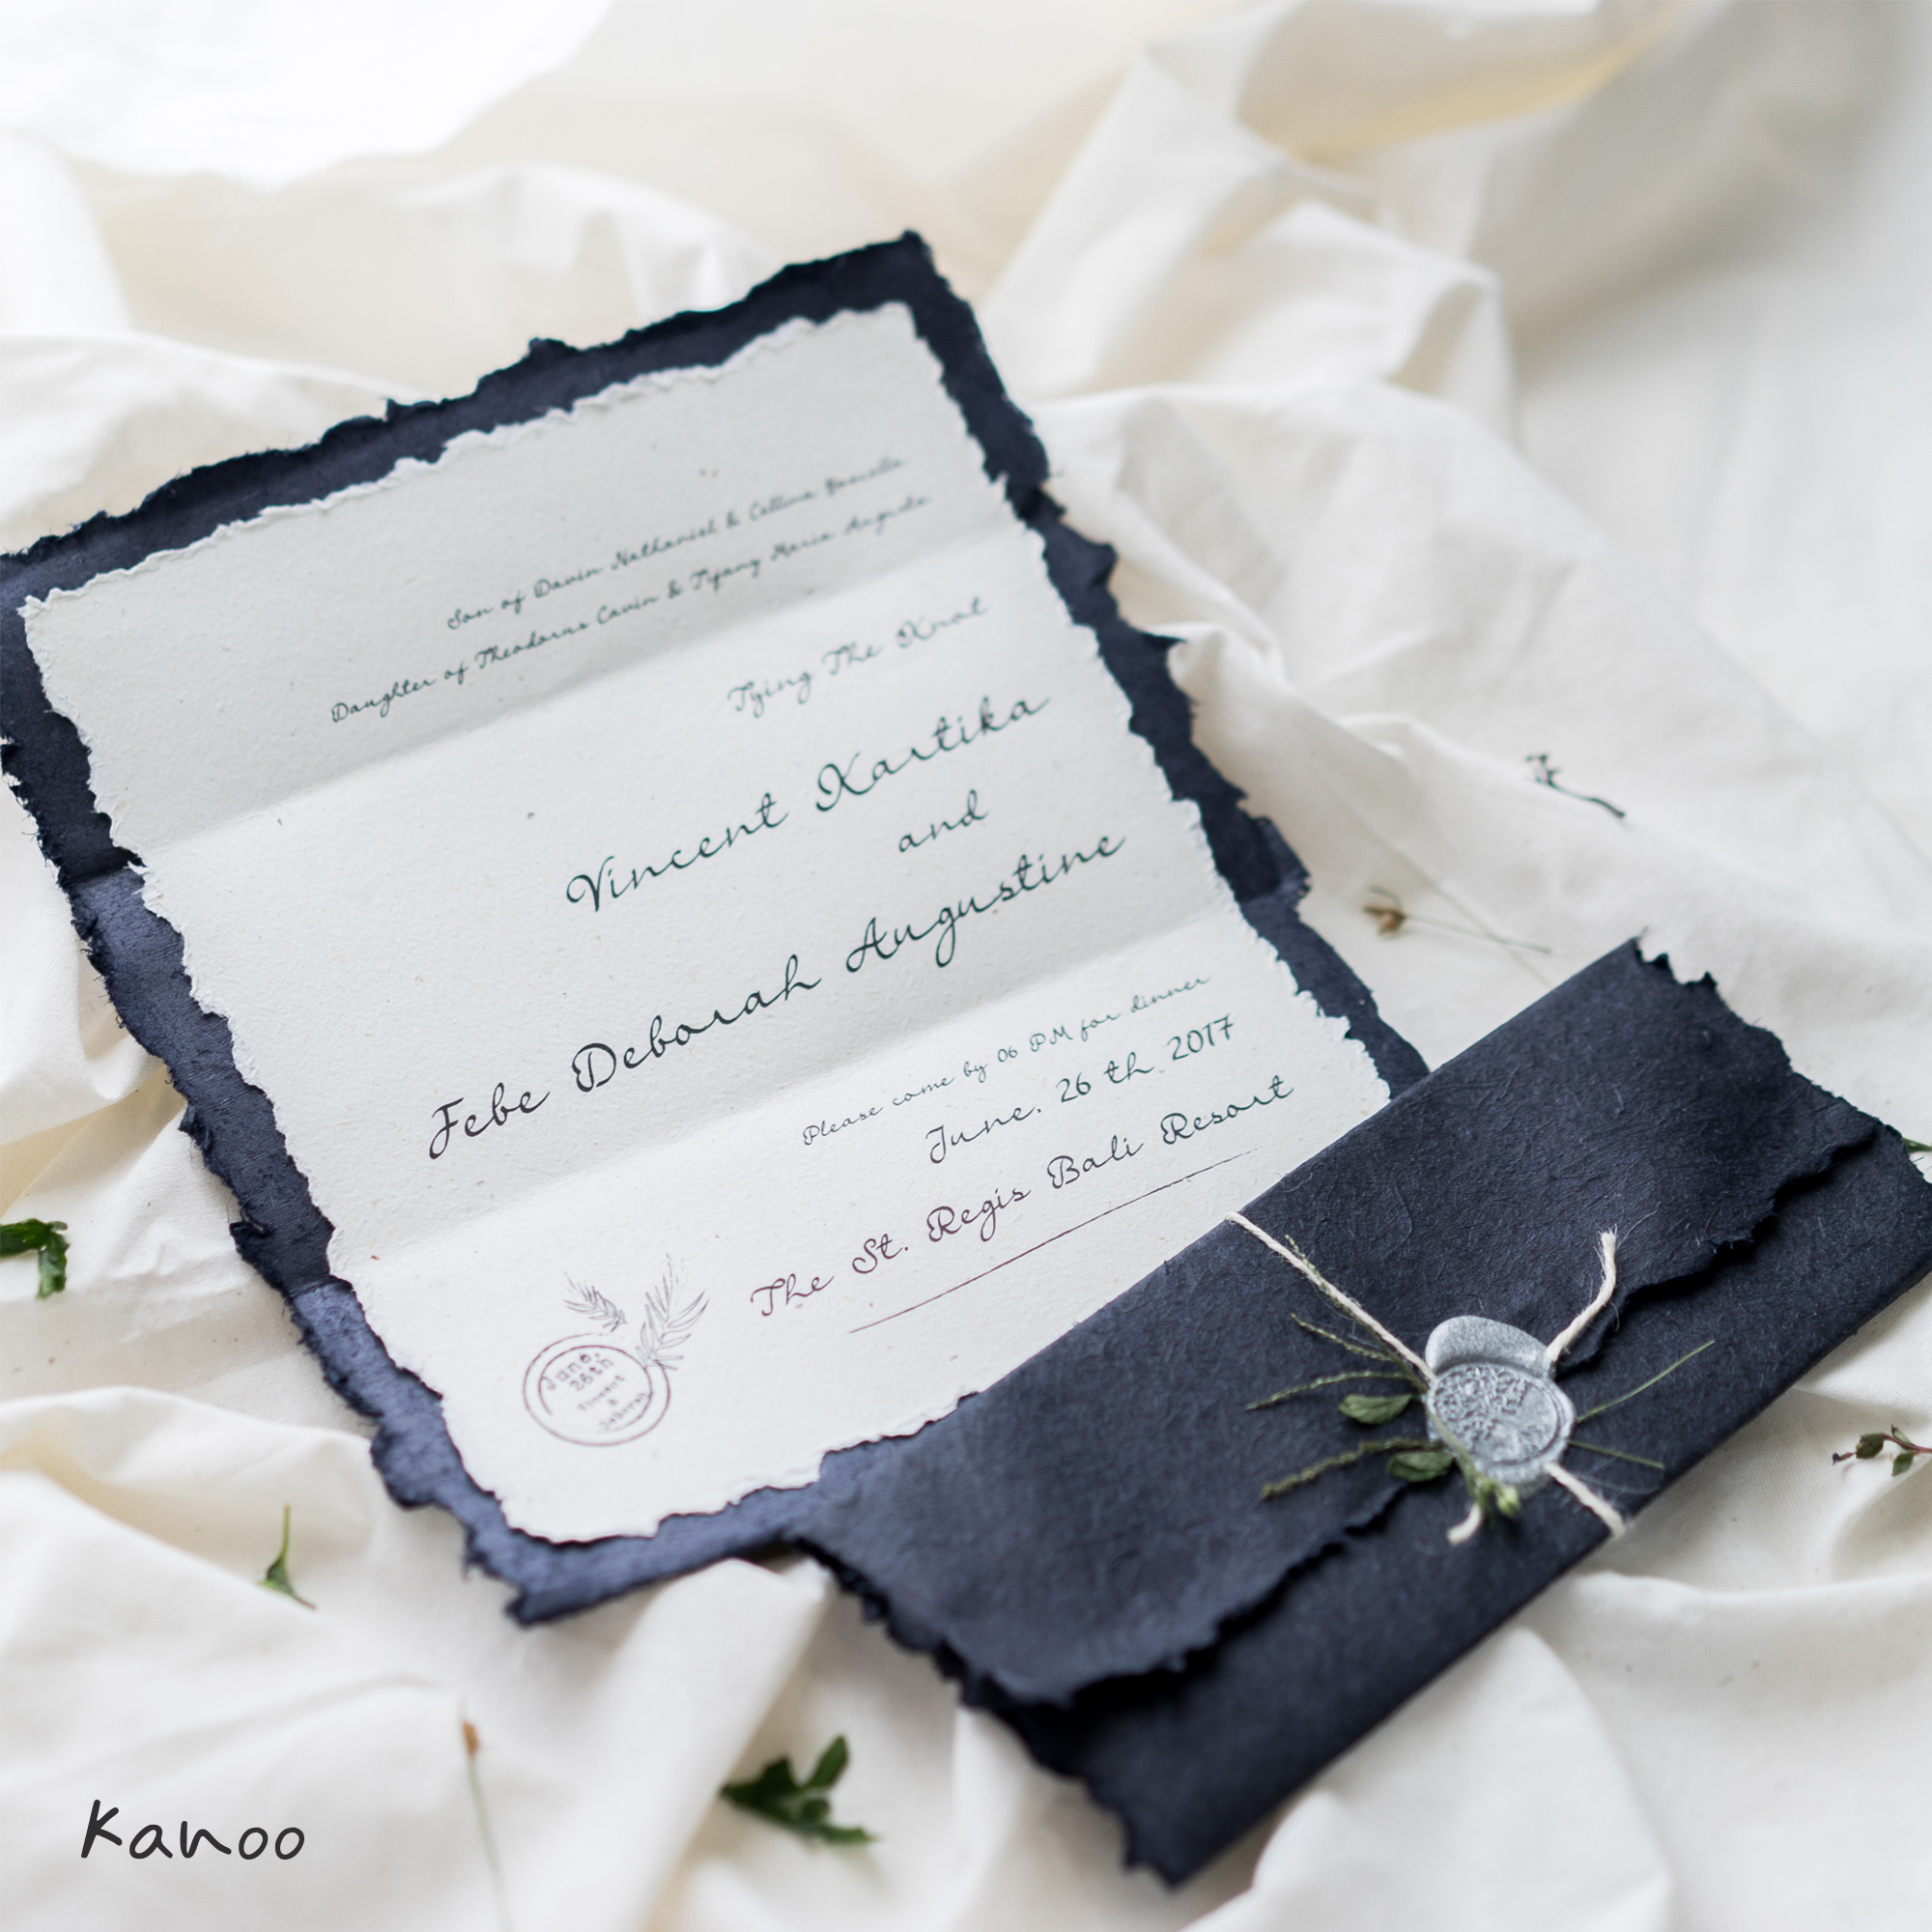 Fancy Recycled Paper Invitations Wedding Ideas - Invitations Design ...